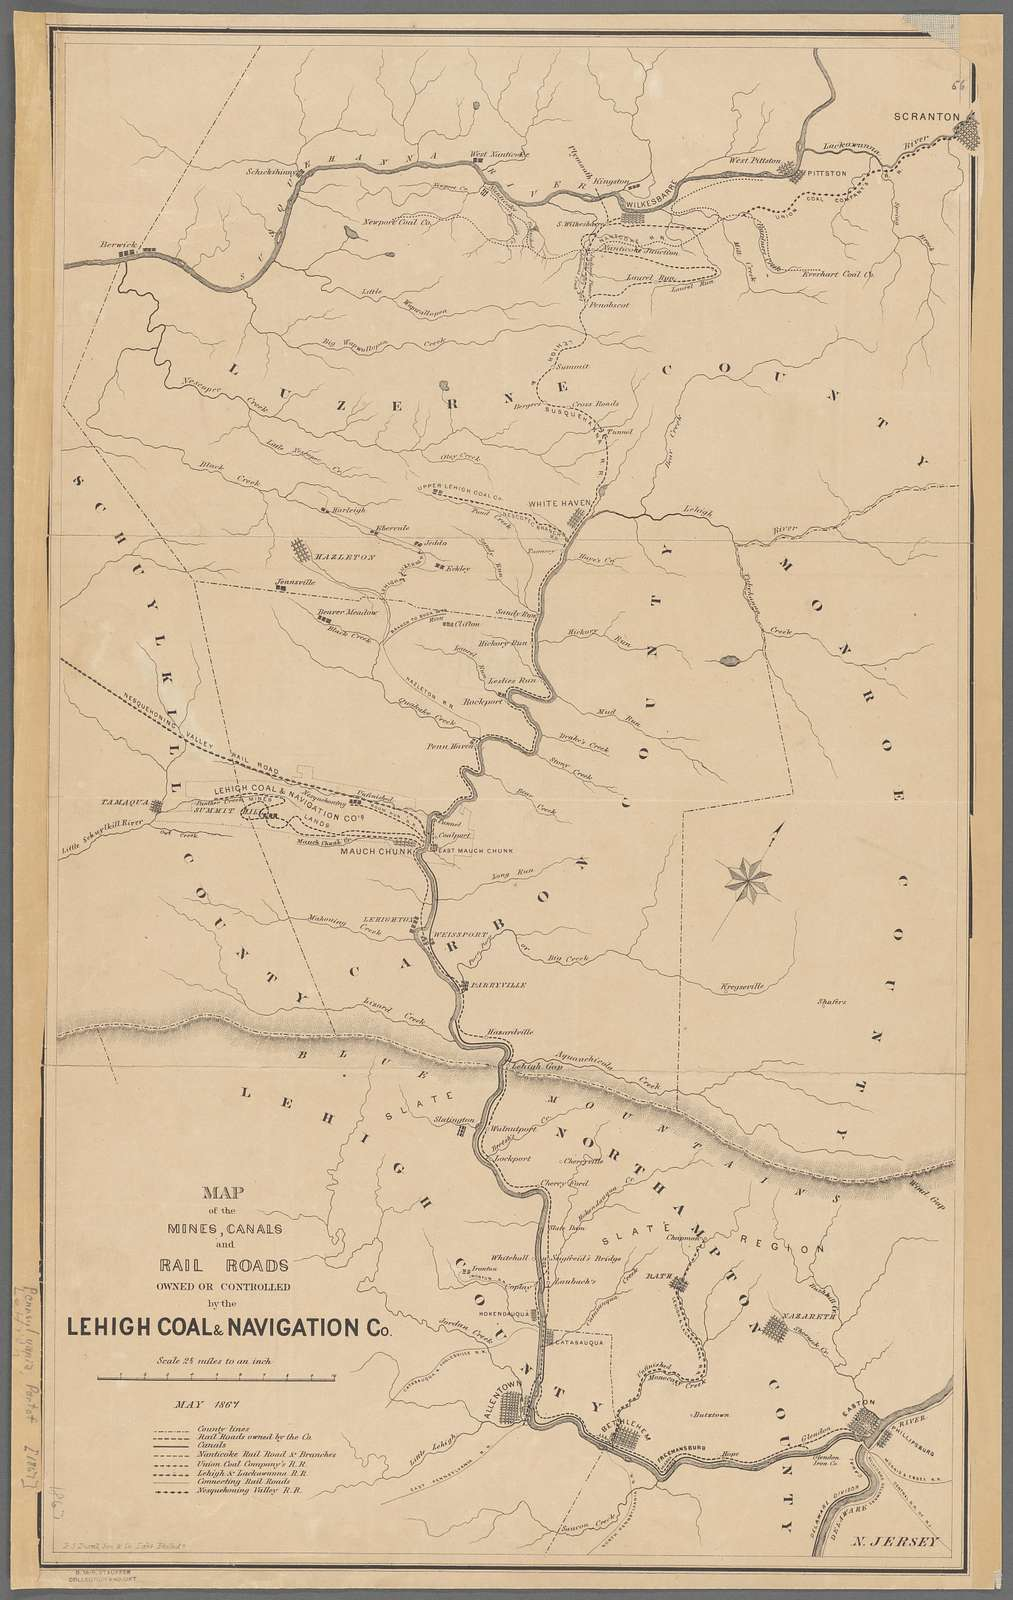 Map of the mines, canals, and rail roads owned or controlled by the Lehigh Coal & Navigation Co. : [Lehigh and Wyoming valleys, Pennsylvania]